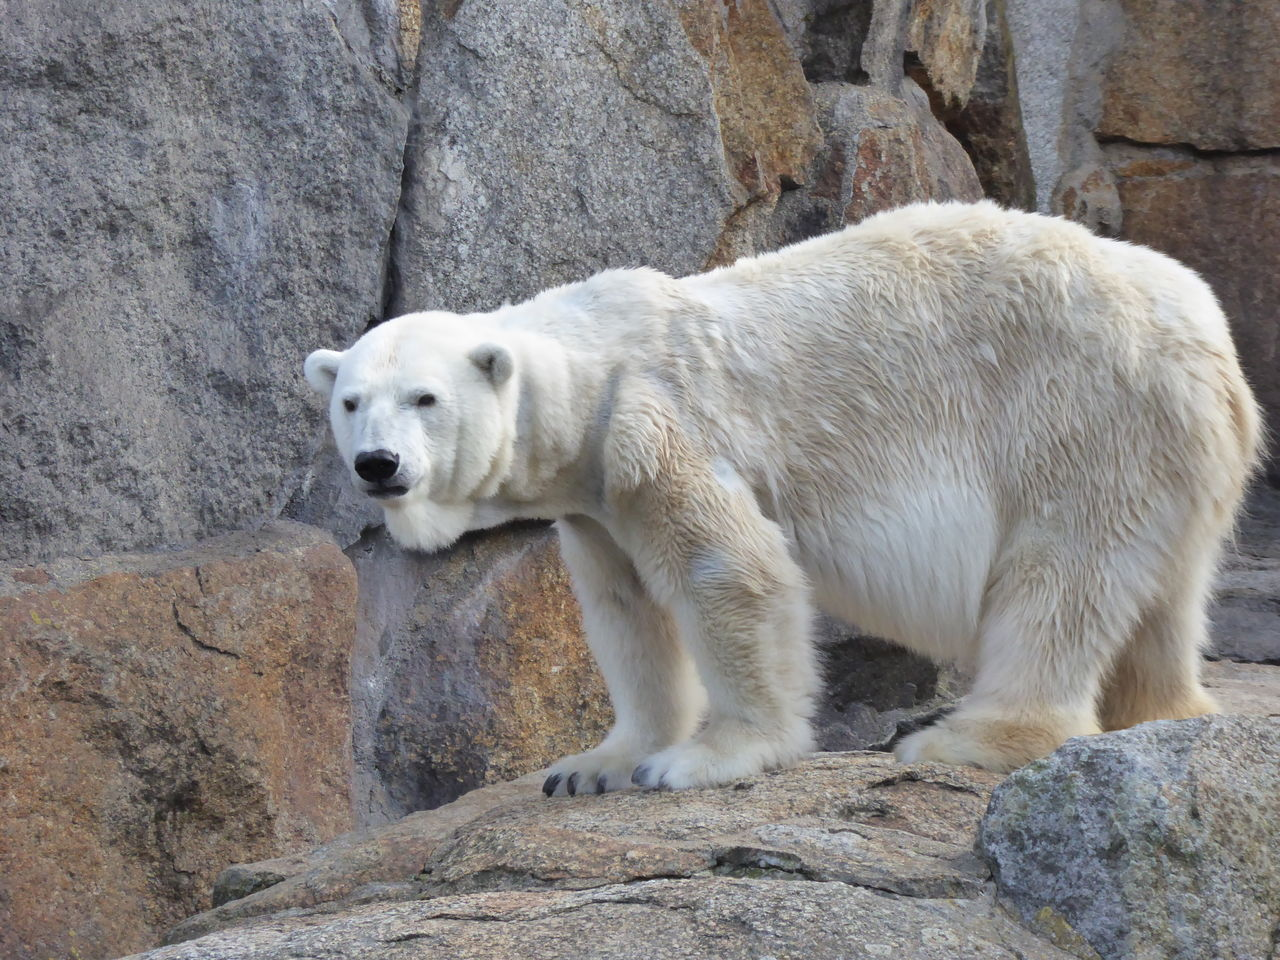 Animal Themes Animal Wildlife Animals In The Wild Bear Climatic Change Endangered Animals Endangered Species Ice Cap Melting Mammal Nature North Pole One Animal Polar Bear Rock Formation Zoo Zoology